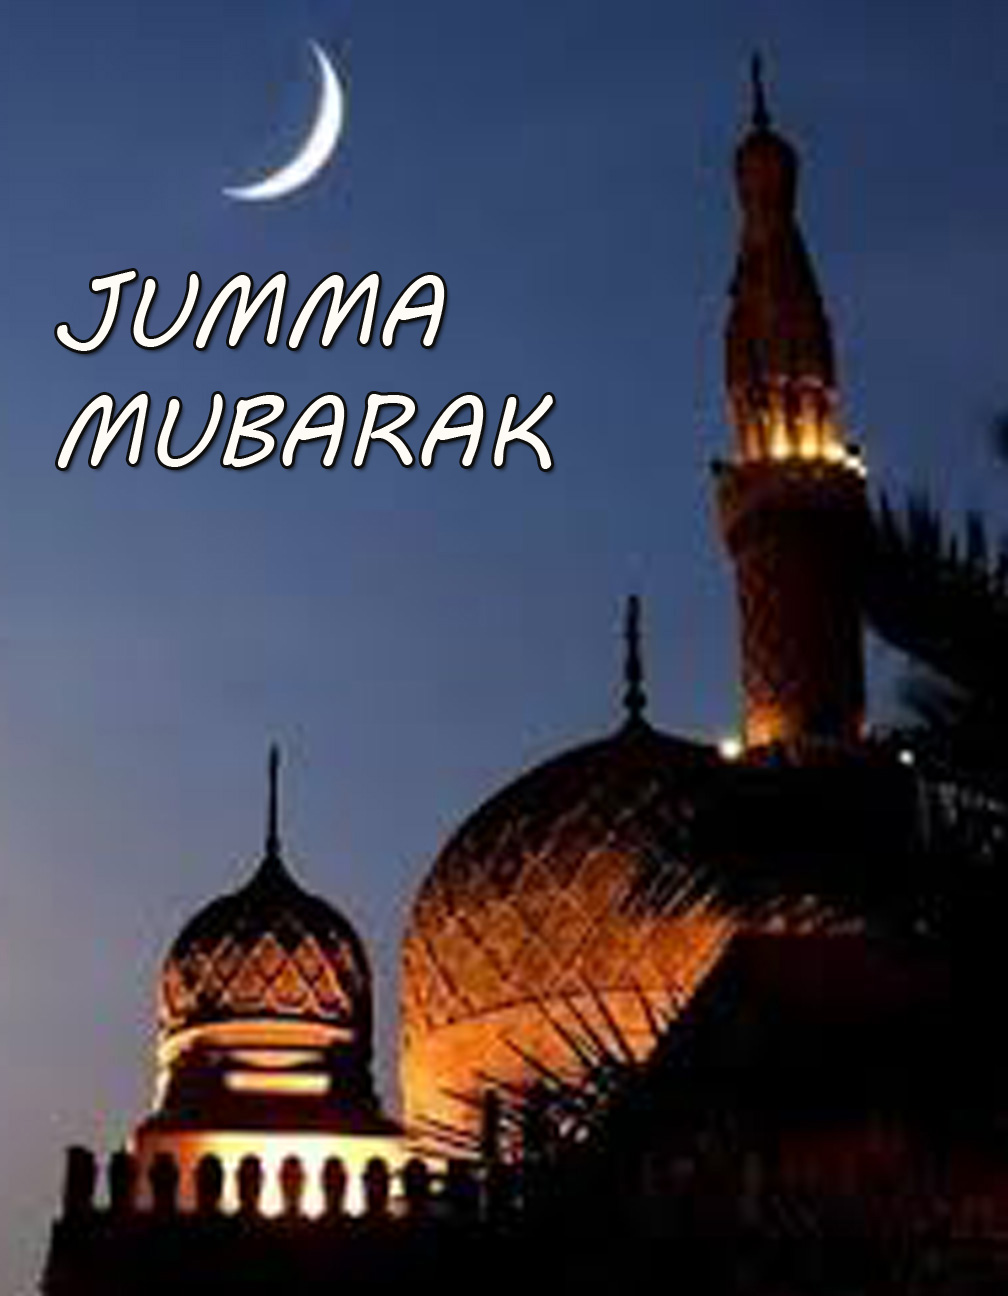 pictures of the day jumma mubarak by dtn news it s friday pool logistics in lake forest ca pool logos free